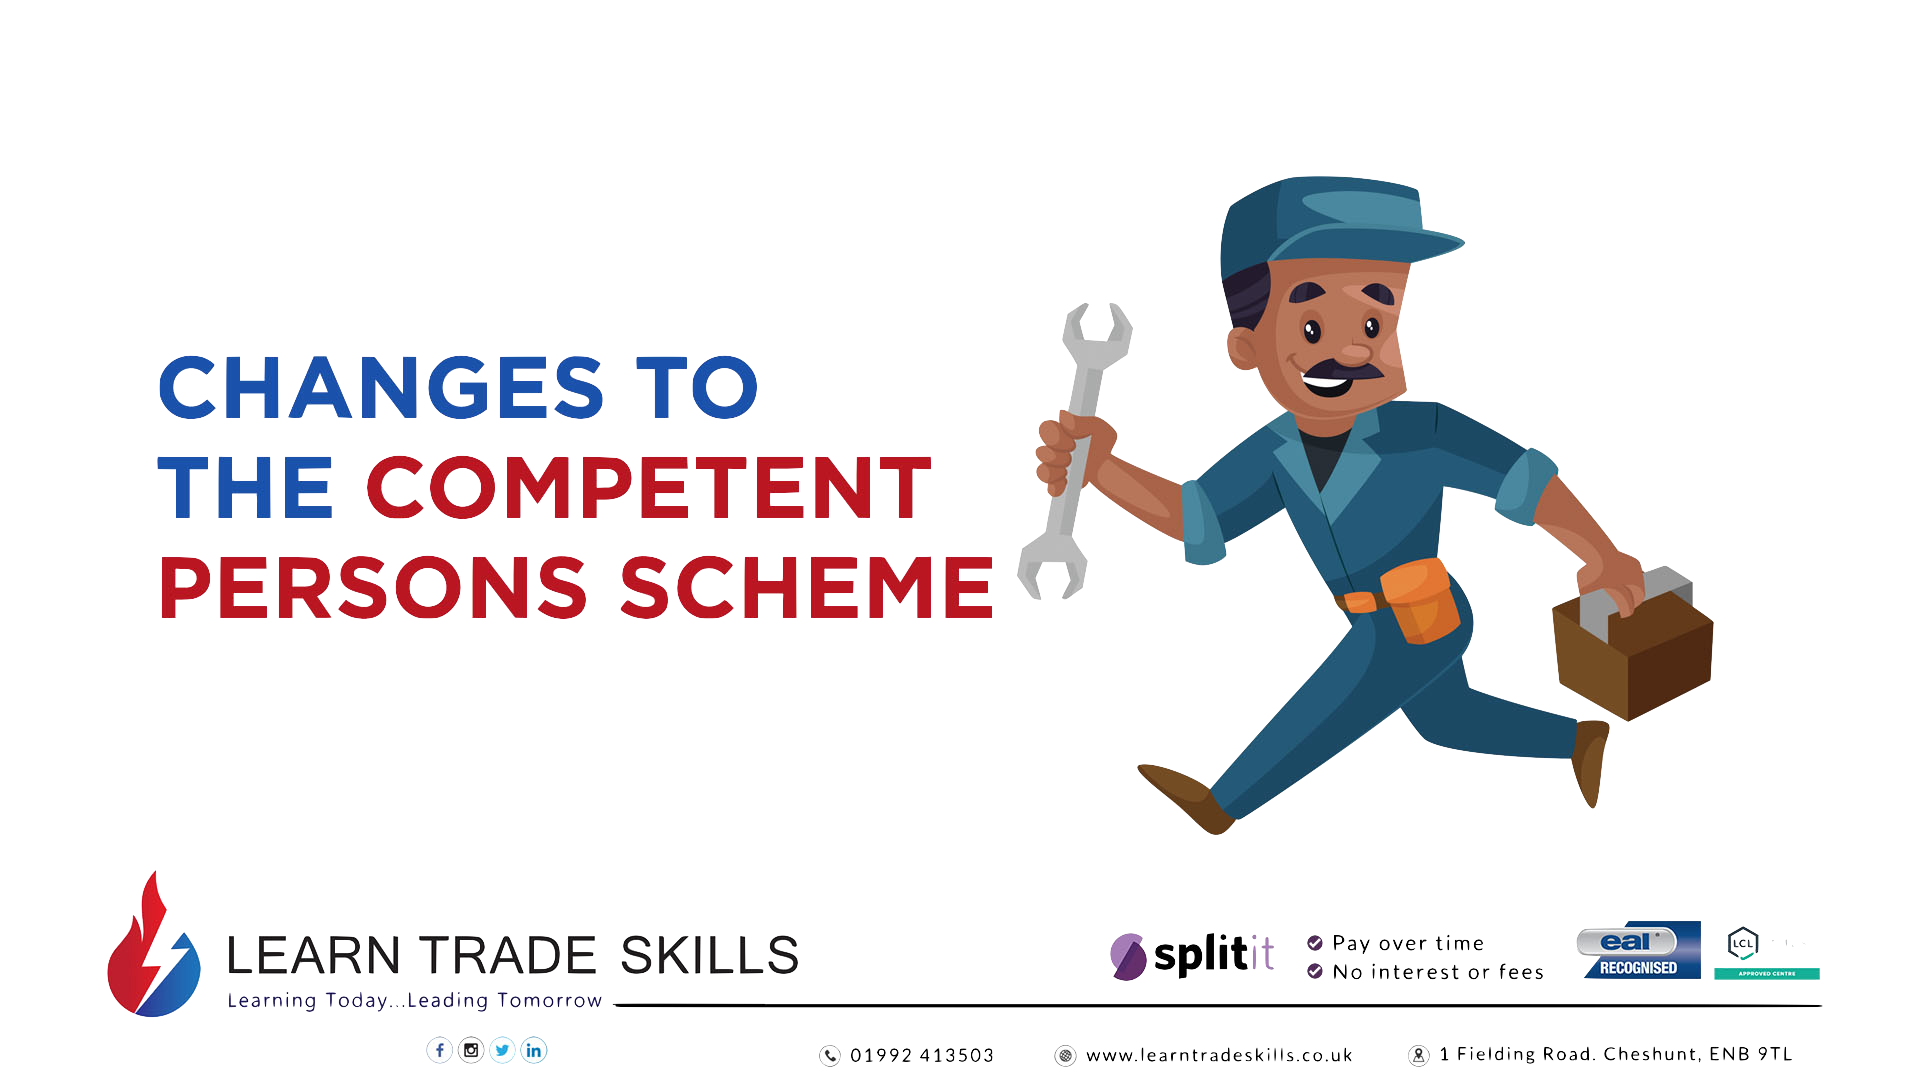 Changes to the competent persons scheme